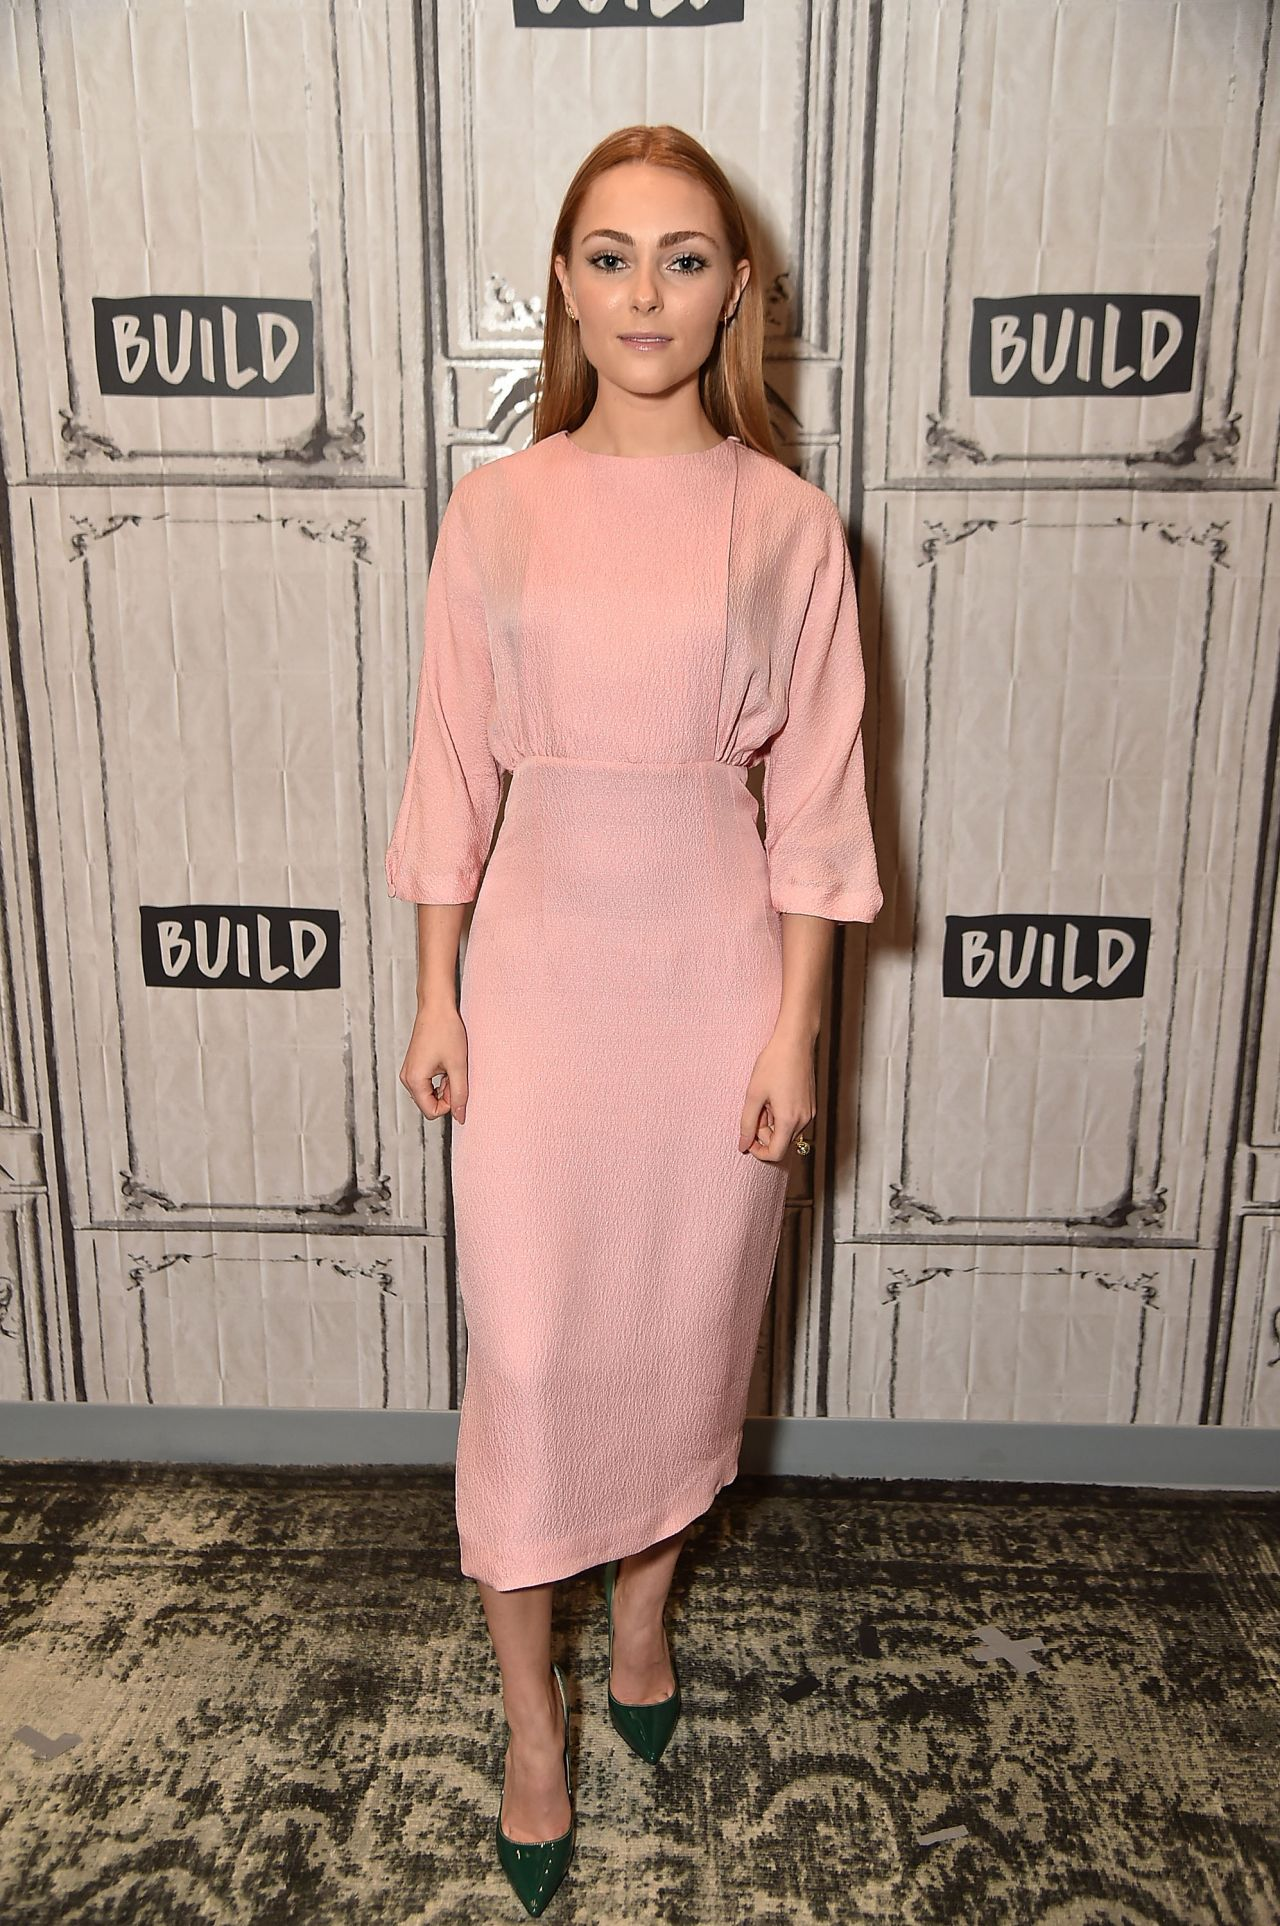 Annasophia Robb Promoting The Movie Quot Freakshow Quot At Build